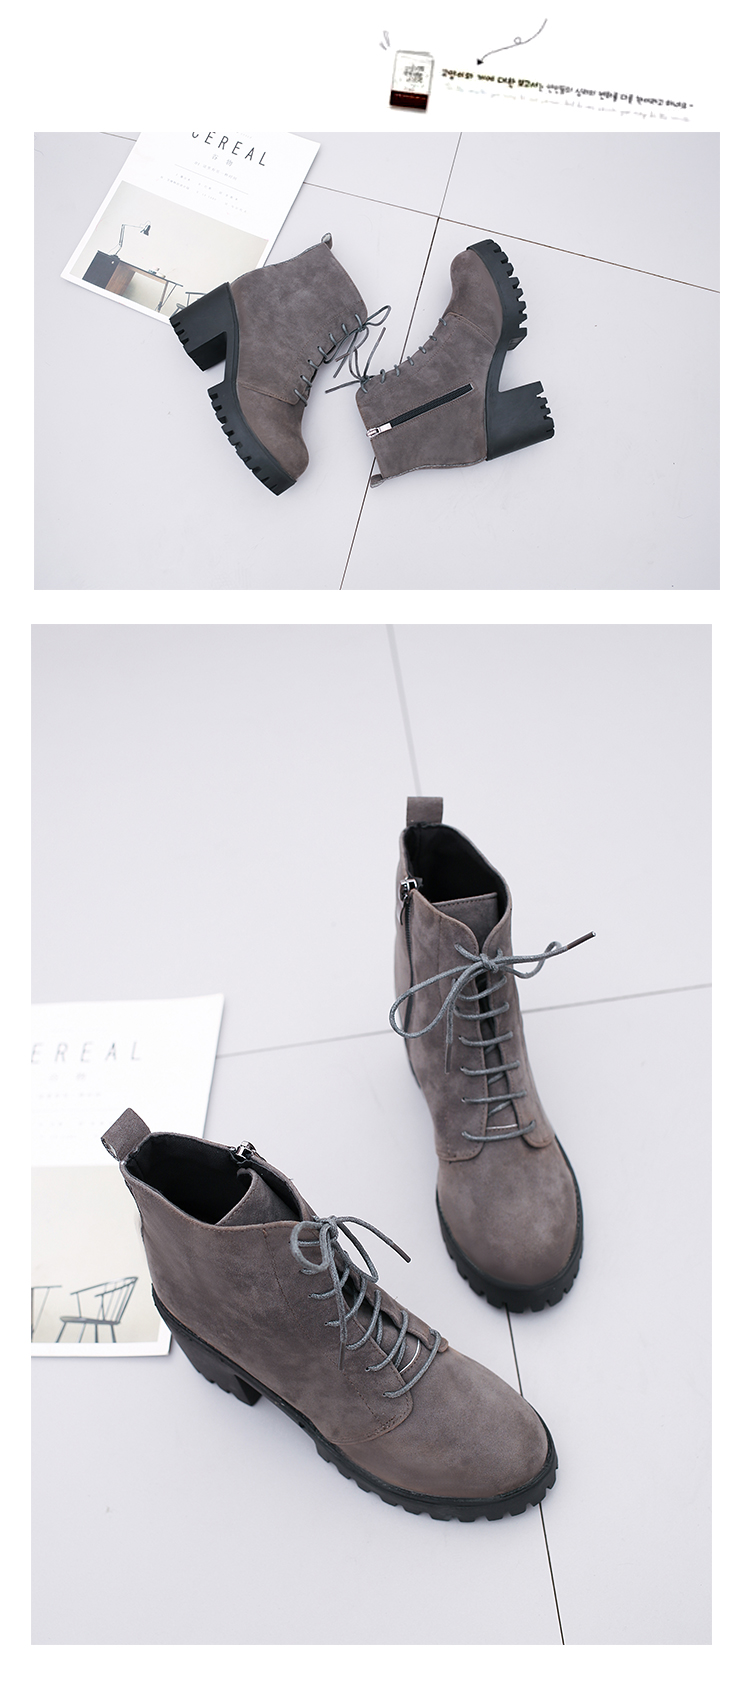 2018 new short tube autumn and winter women's boot thick with high-heeled solid color round head fashion casual warm boots wome 21